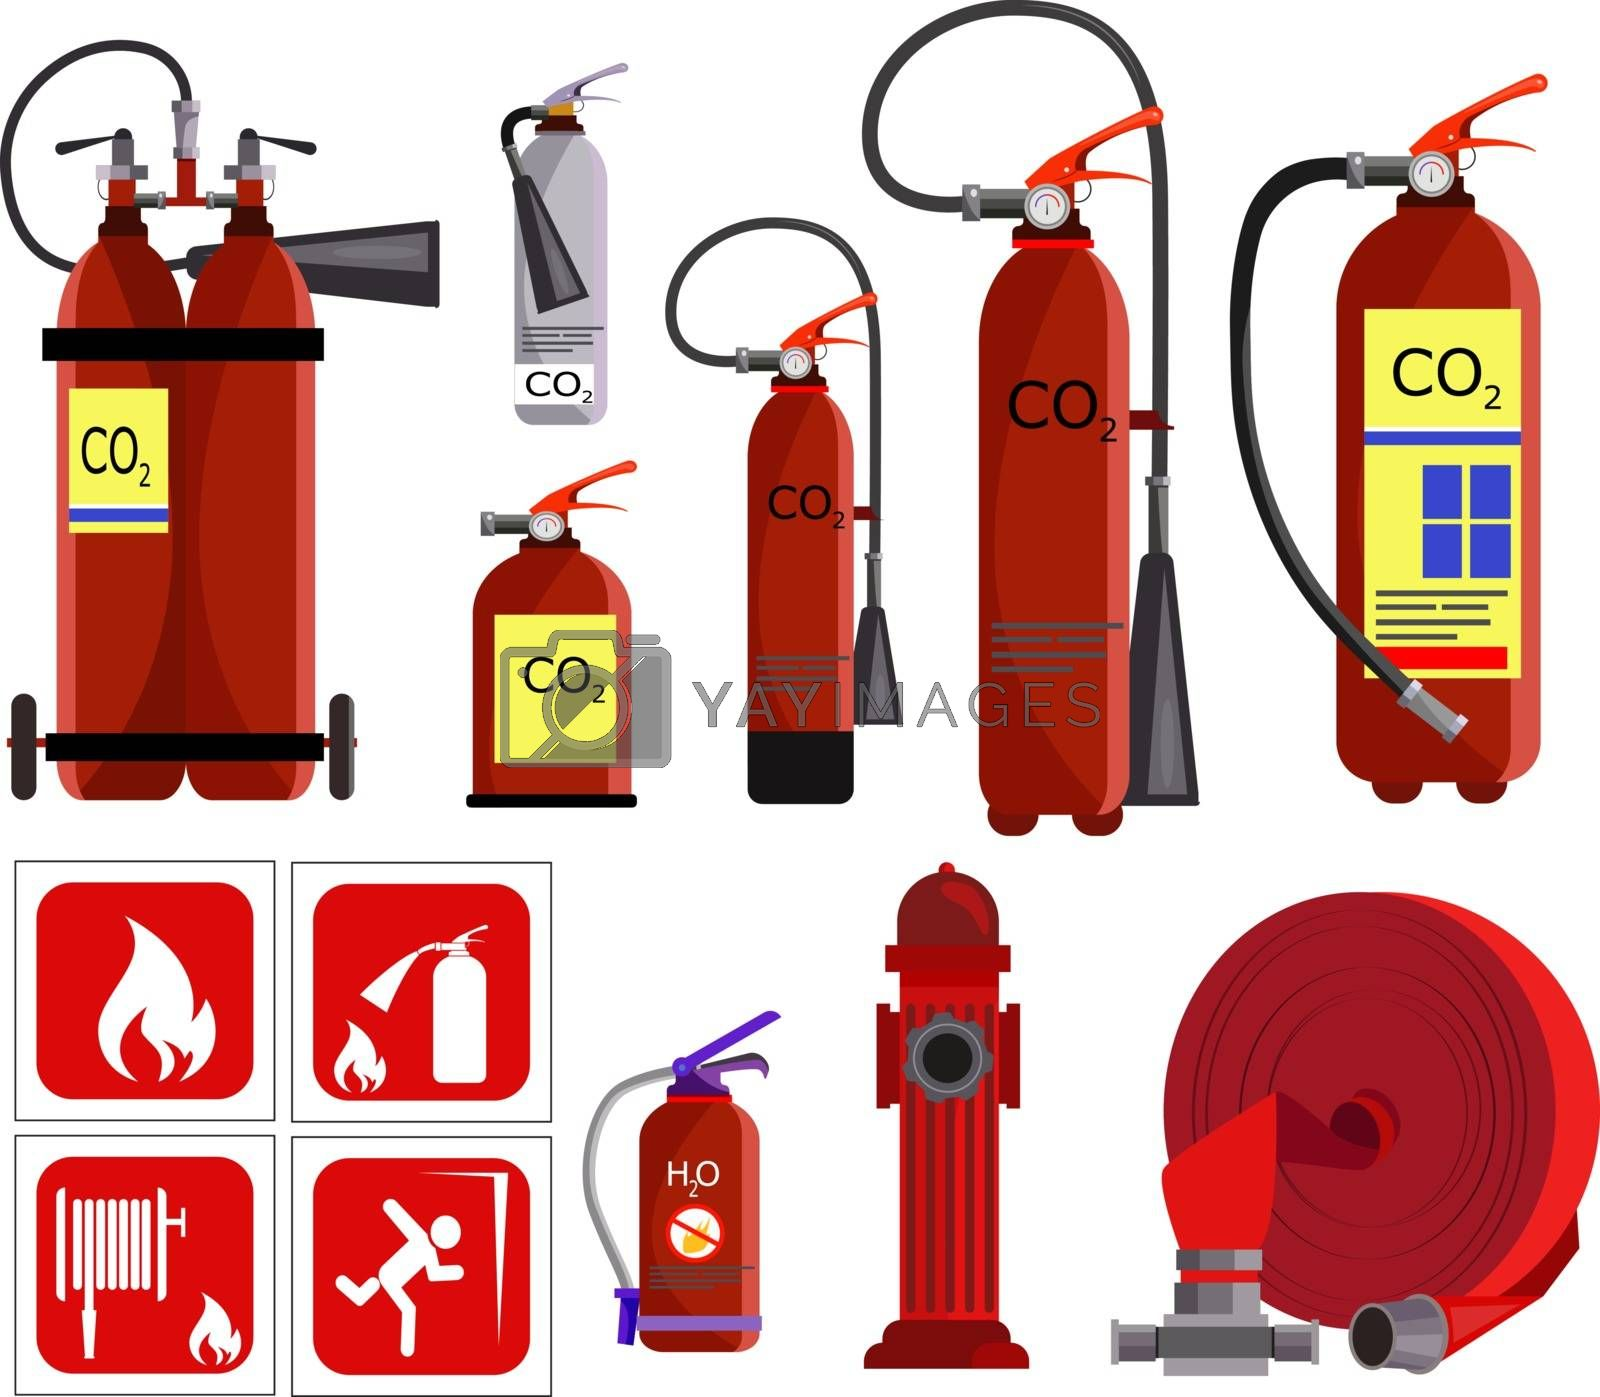 Fire extinguisher icons set. Flat icons on white background. Balloon, fire hydrant, water balloon. Fire service concept. Vector illustration can be used for topics like social service, danger, fire